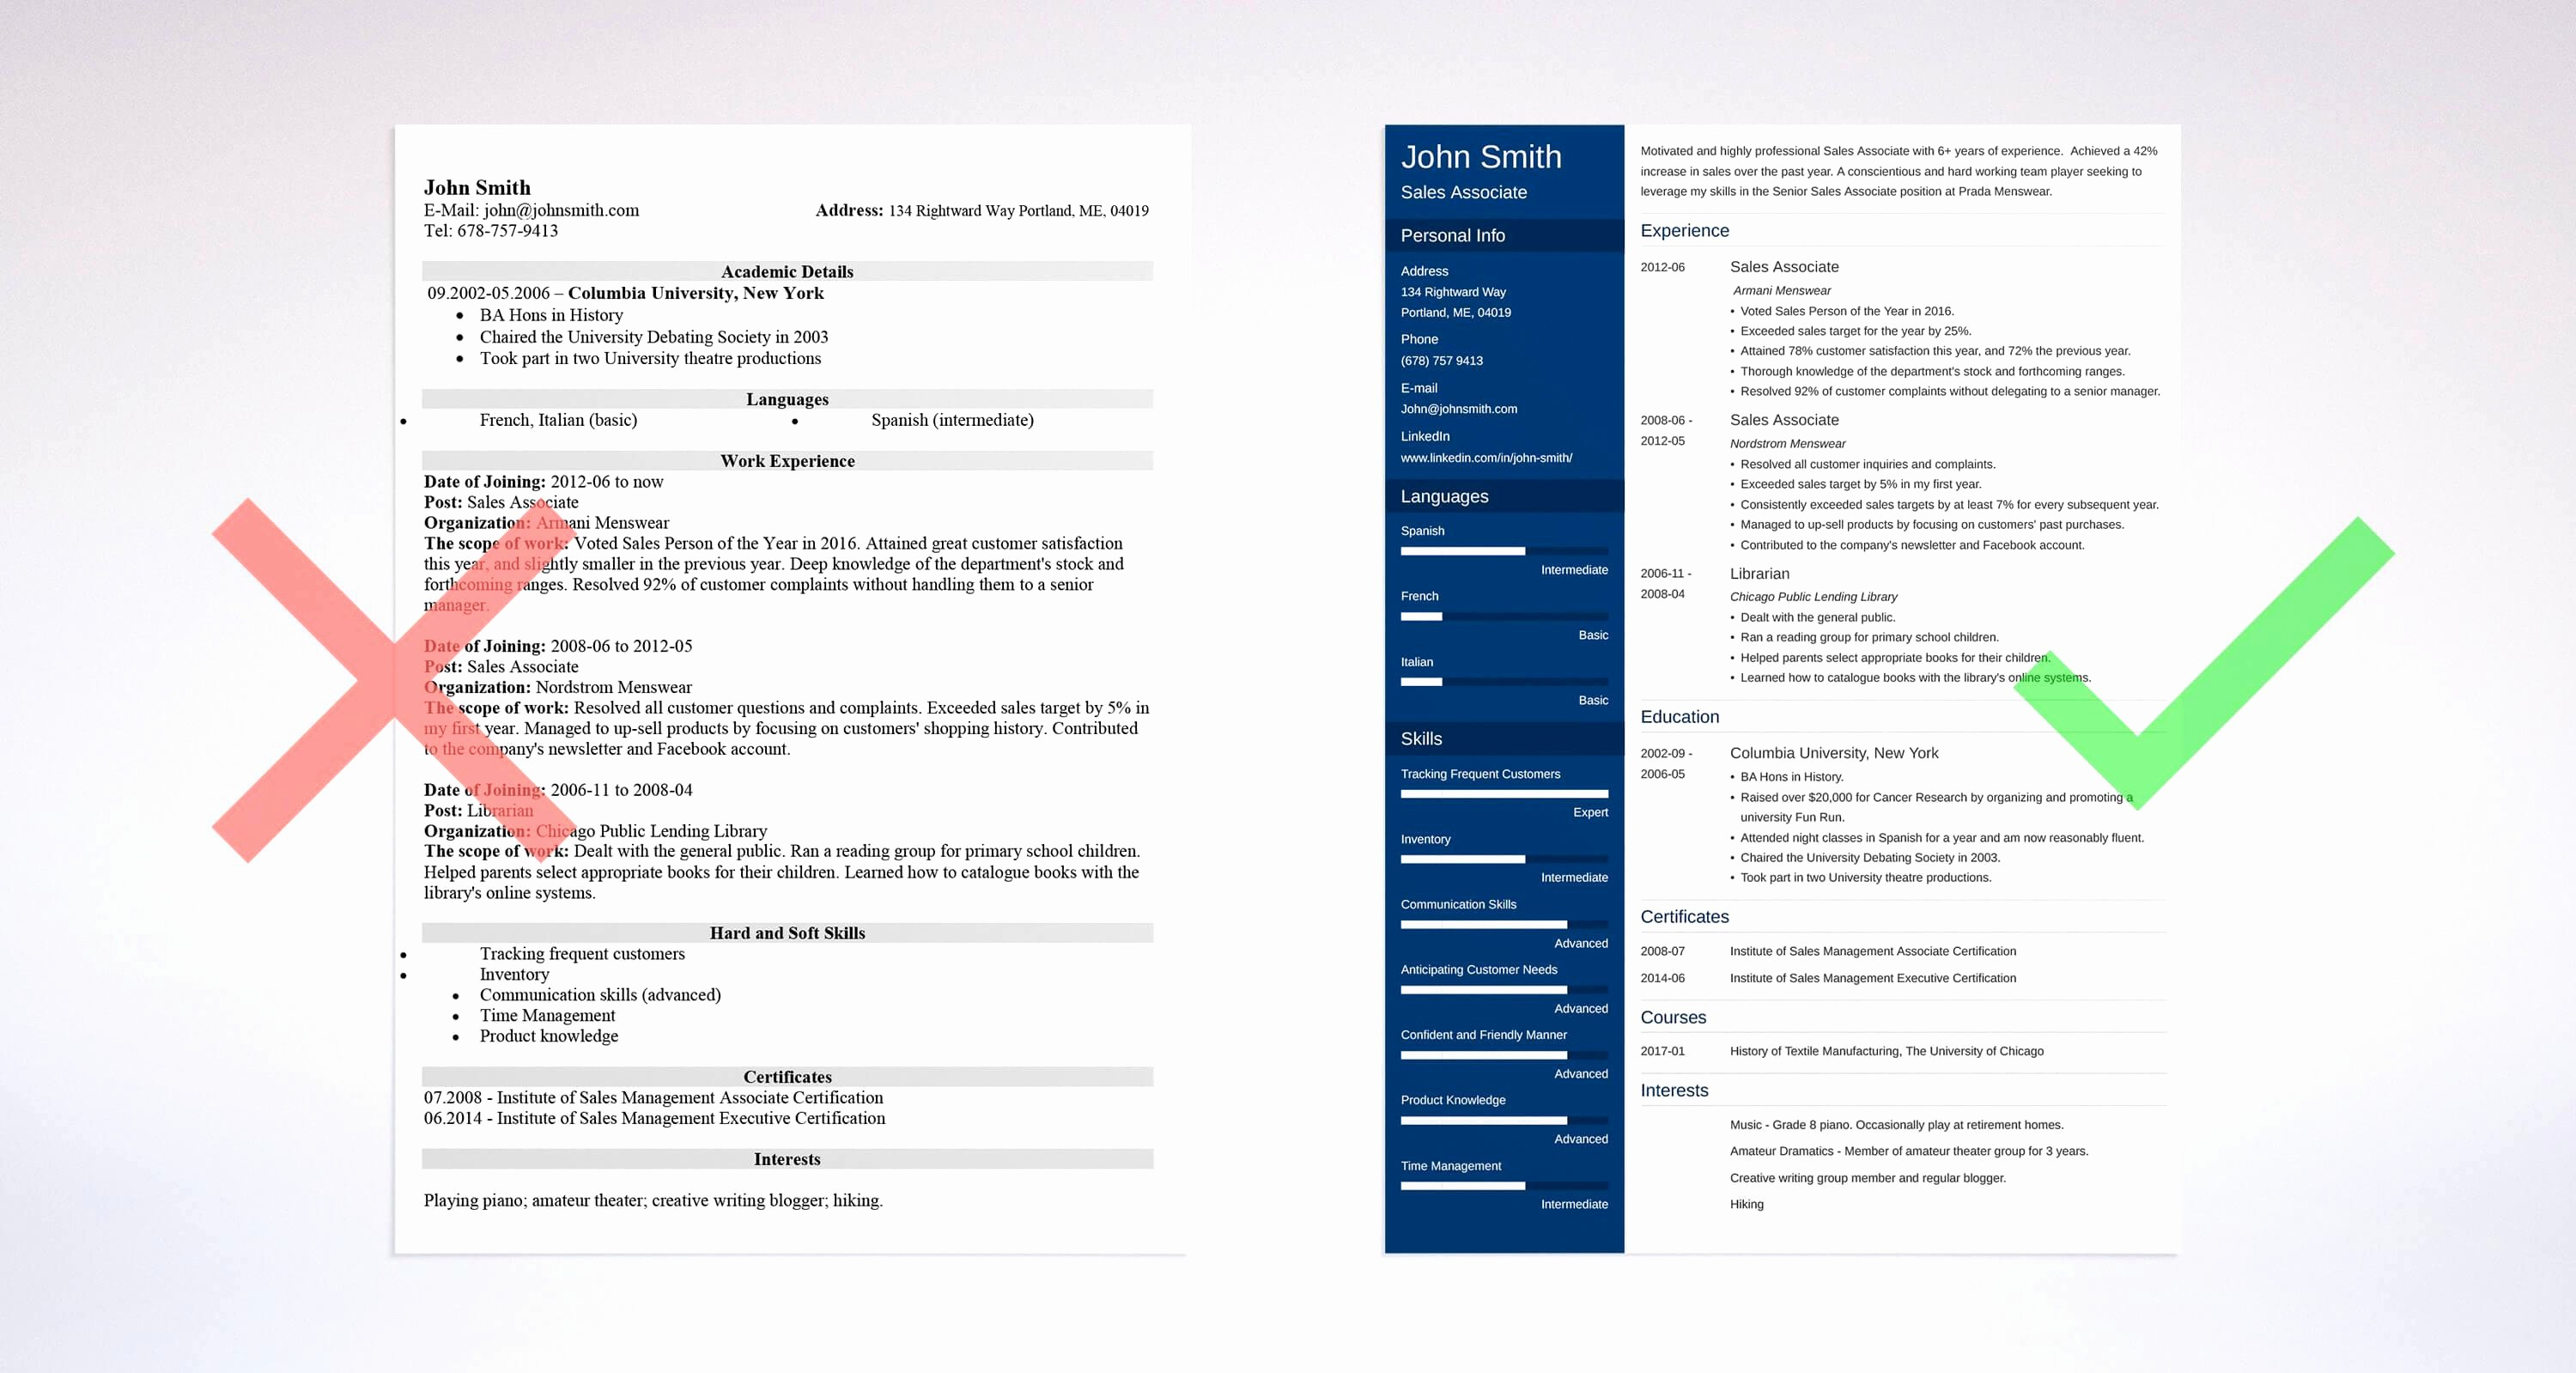 Geology Resume Template - Retail Resume Examples Unique Sales associate Resume Examples Unique